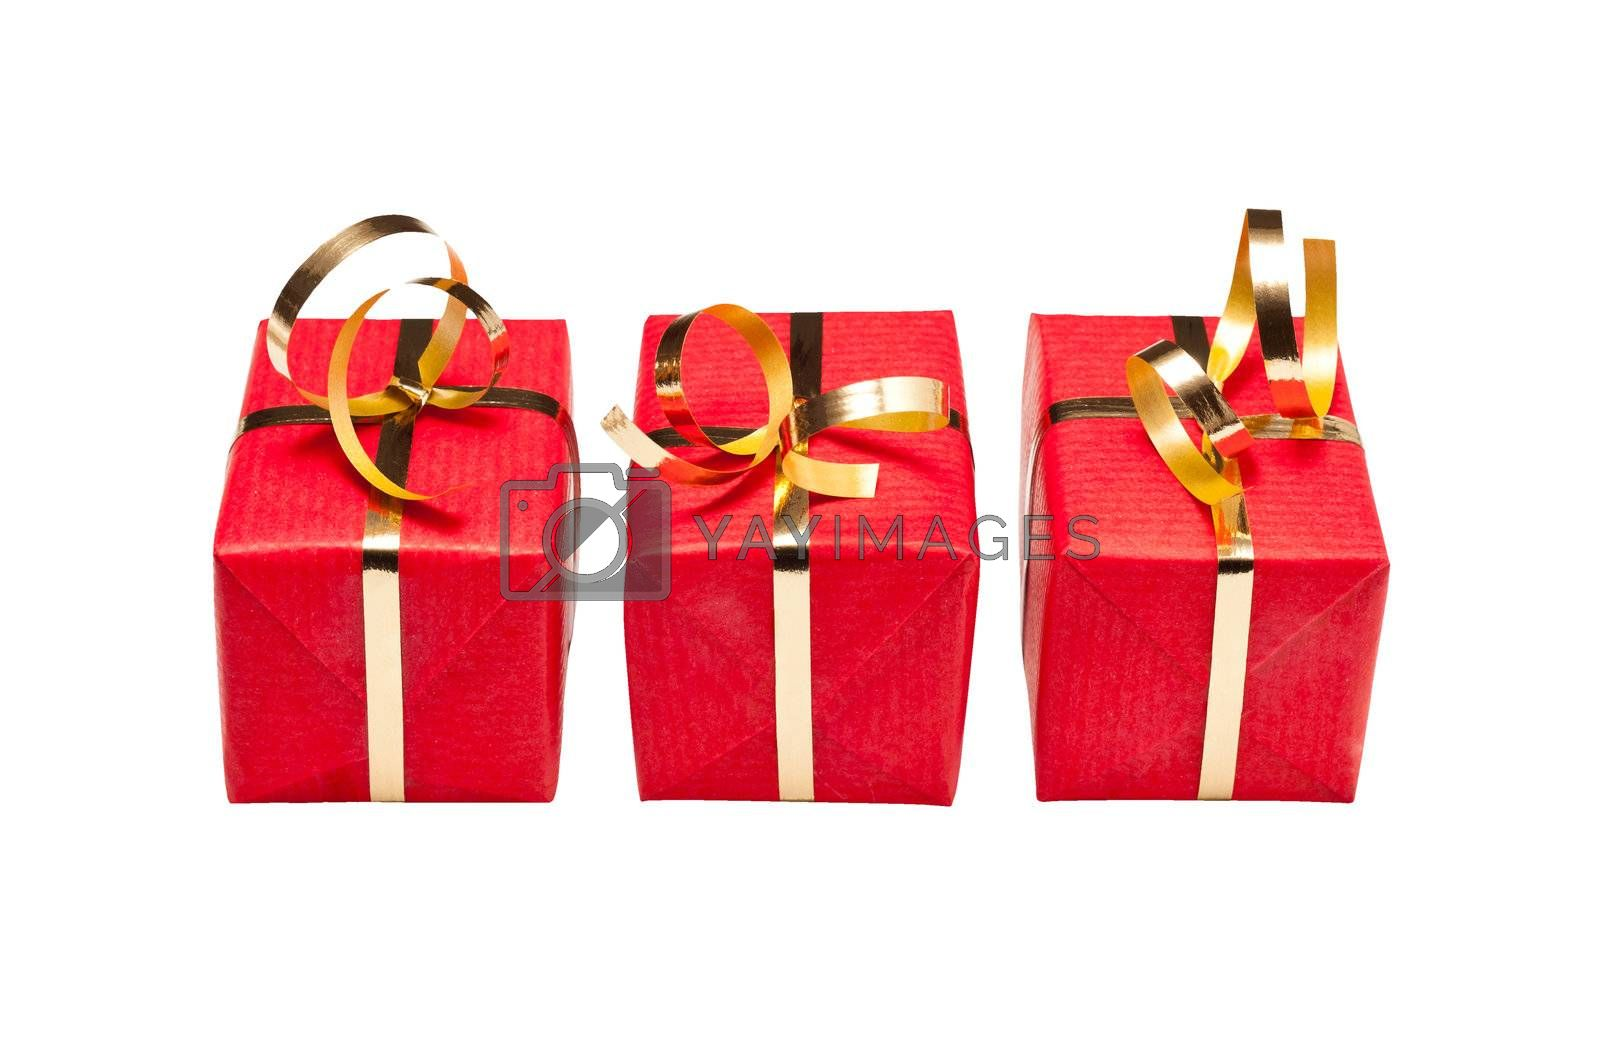 Royalty free image of Trio of Red and Gold Xmas Gift Boxes by timh